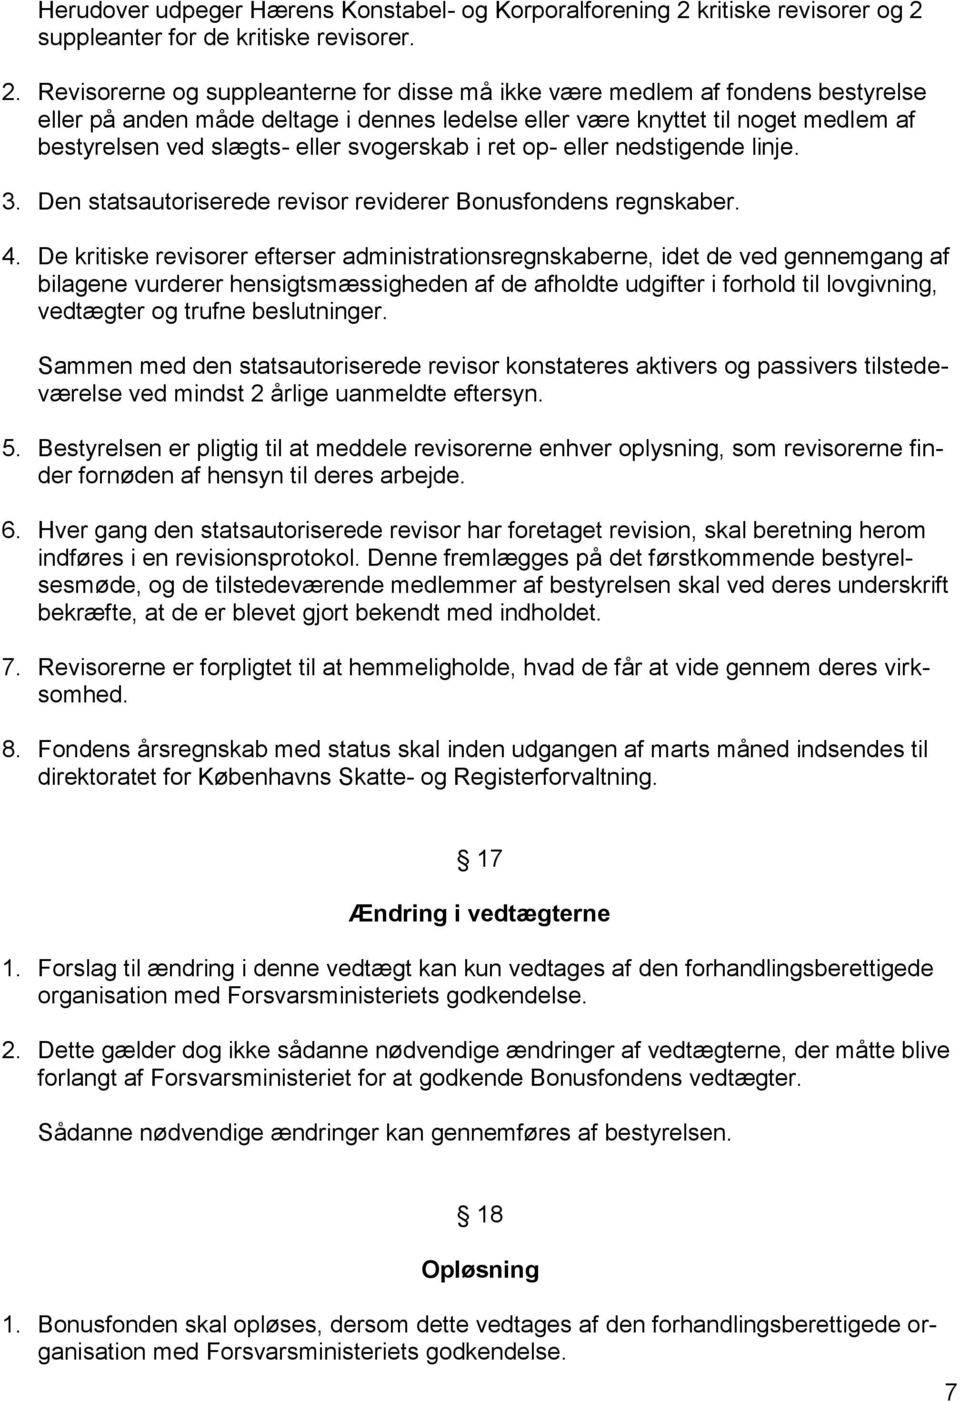 suppleanter for de kritiske revisorer. 2.